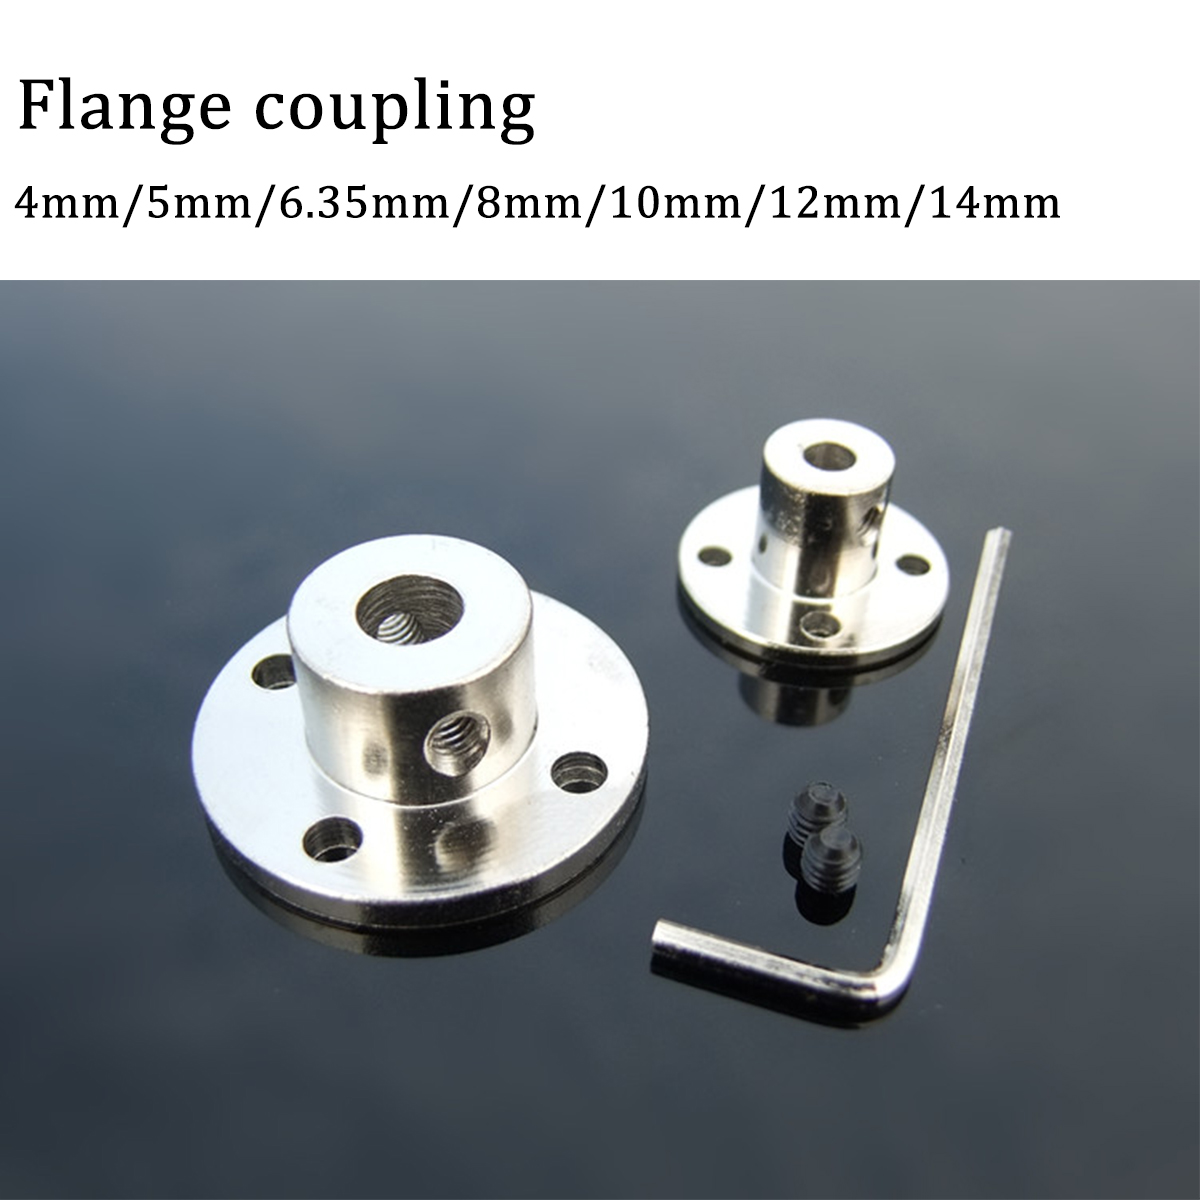 2 x Shaft Motor Rigid Solid Coupling Coupler With M4 Screws /& Spanner 8mm-8mm